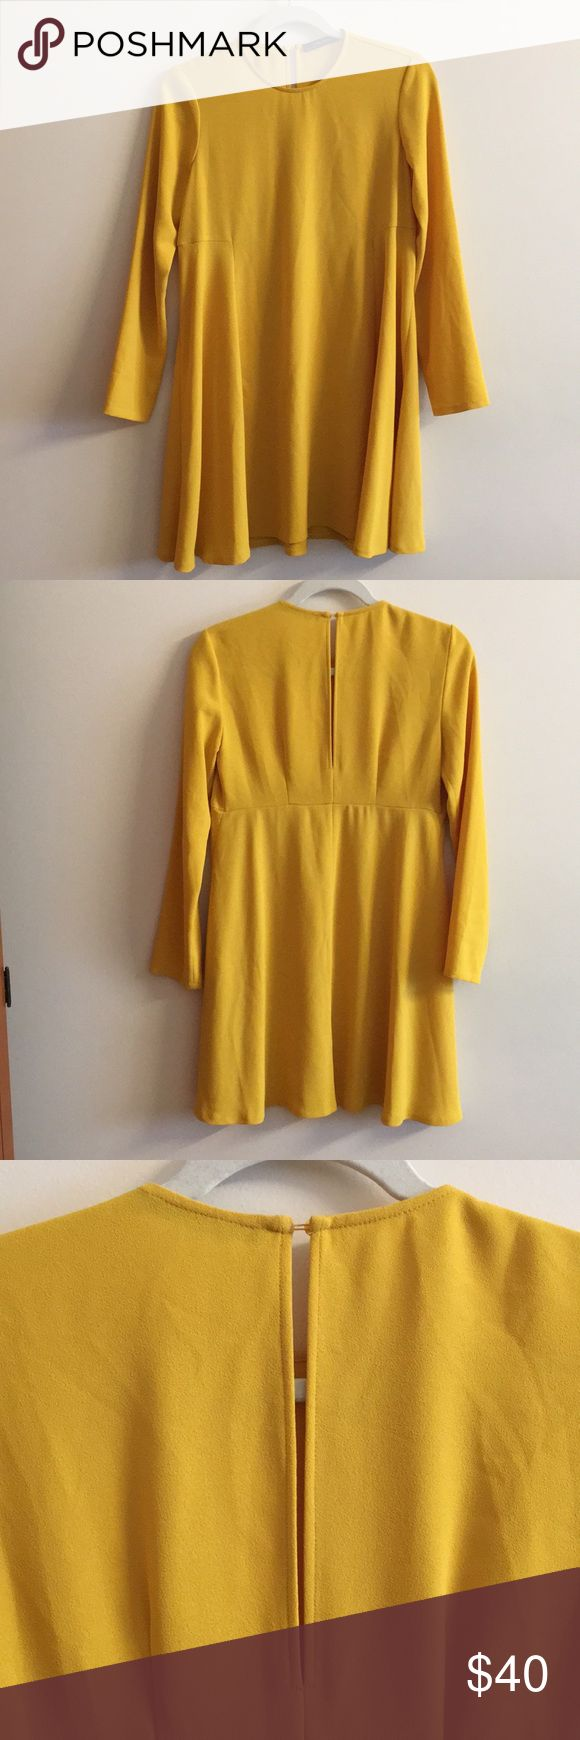 """Adorable Zara mini dress 💛 the cutest yellow baby doll dress from zara 💛 marked small; it has a loose, flowy fit 🌟 i'm 5'5"""" and it hits me about 2"""" above the knee- aka the perfect length. only worn once 💫 no trades ✨ Zara Dresses Mini"""